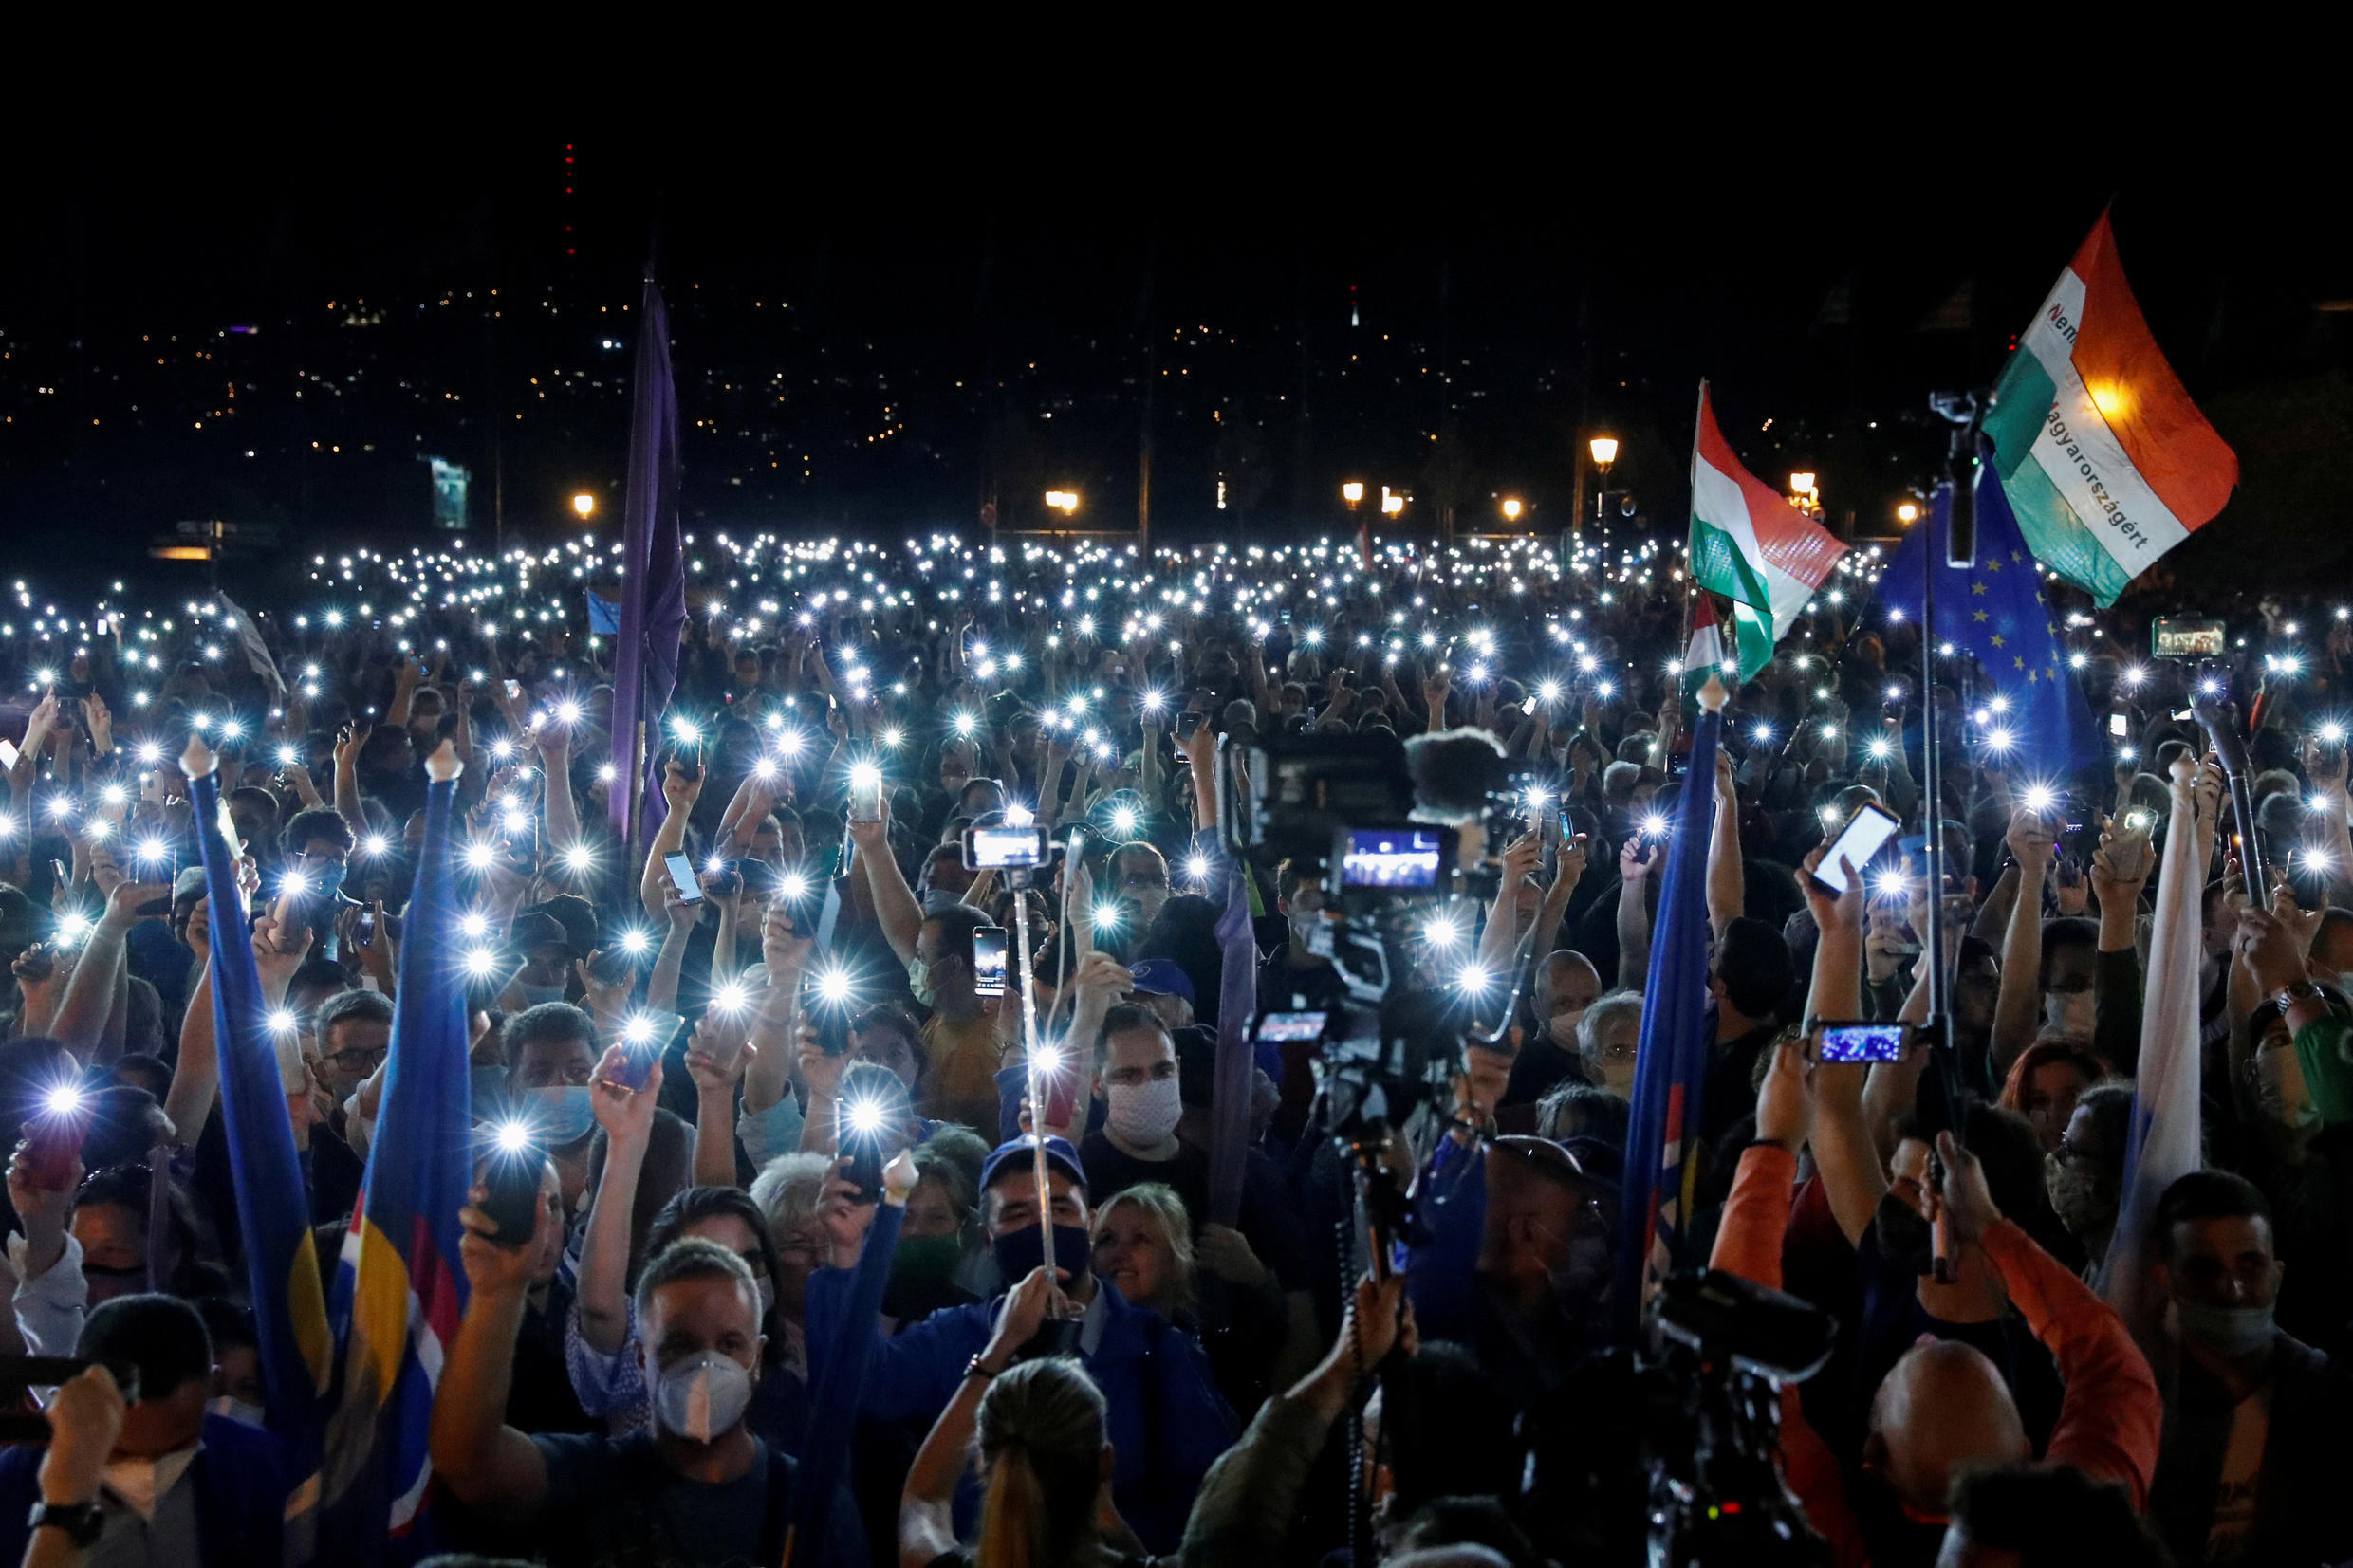 People light up their cell phones as they take part in a protest for media freedom after the editor-in-chief of Index, Hungary's leading independent news website was fired, near the Sandor Palace, in Budapest, Hungary, July 24, 2020.